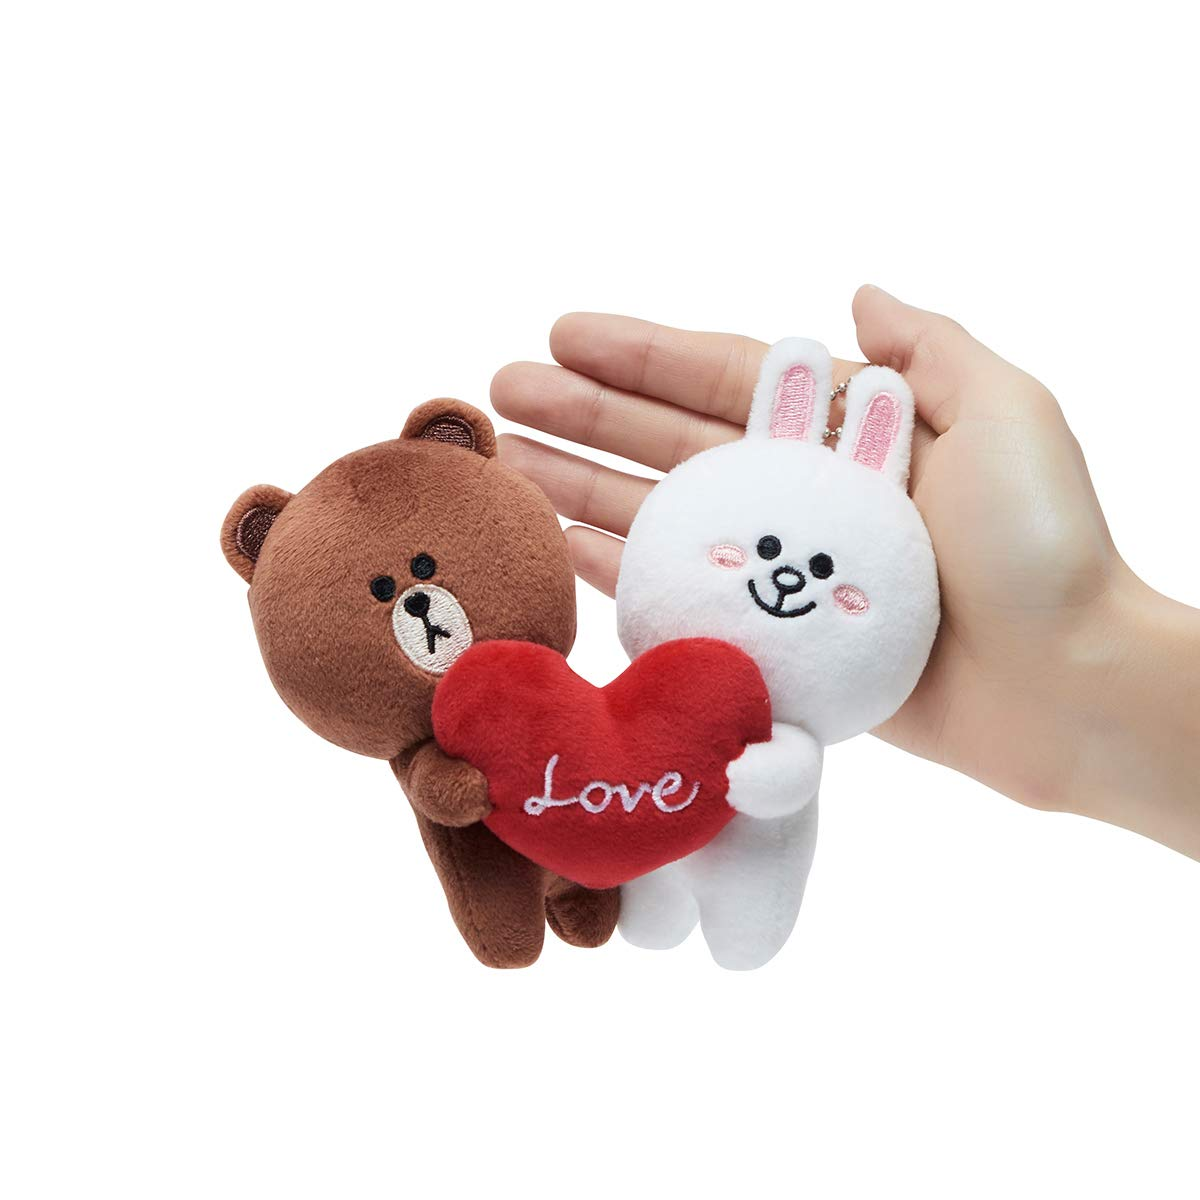 LINE FRIENDS Love Bag Charm - BF Character Keychain Décor 15CM, Brown/White by LINE FRIENDS (Image #3)